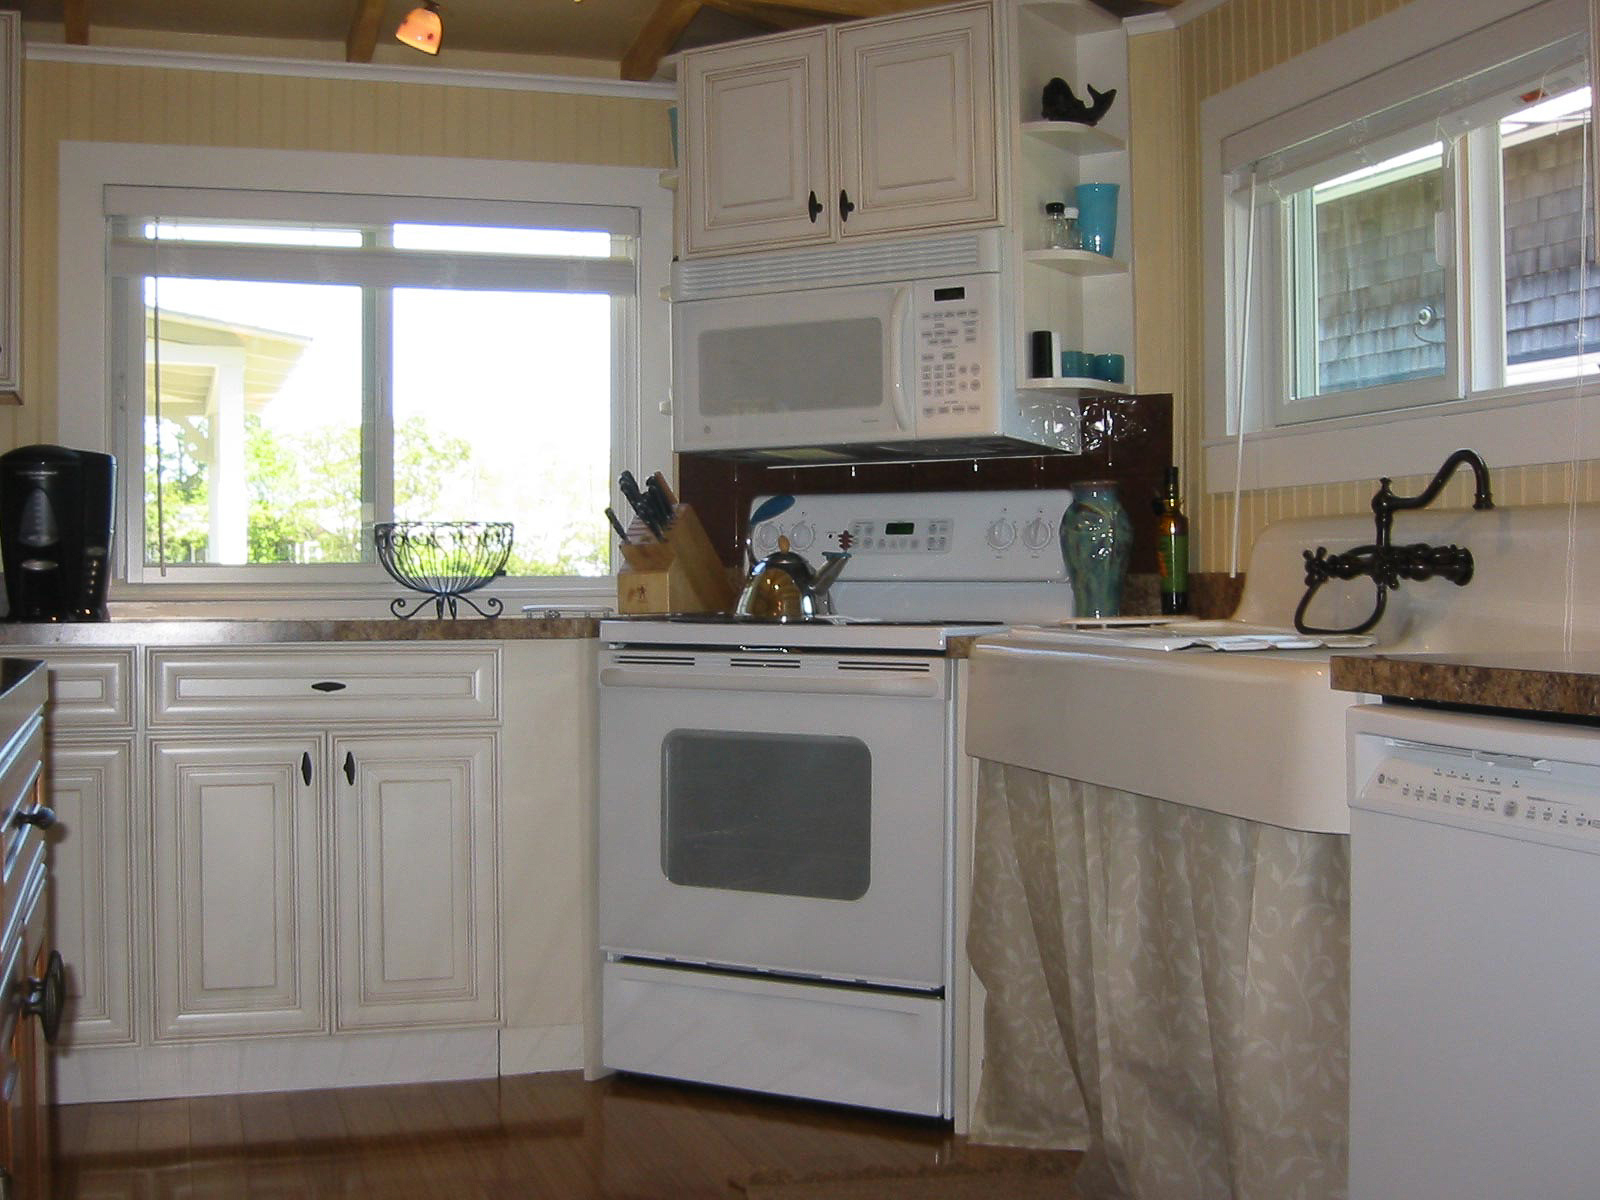 kitchen_with_sink-3.jpg